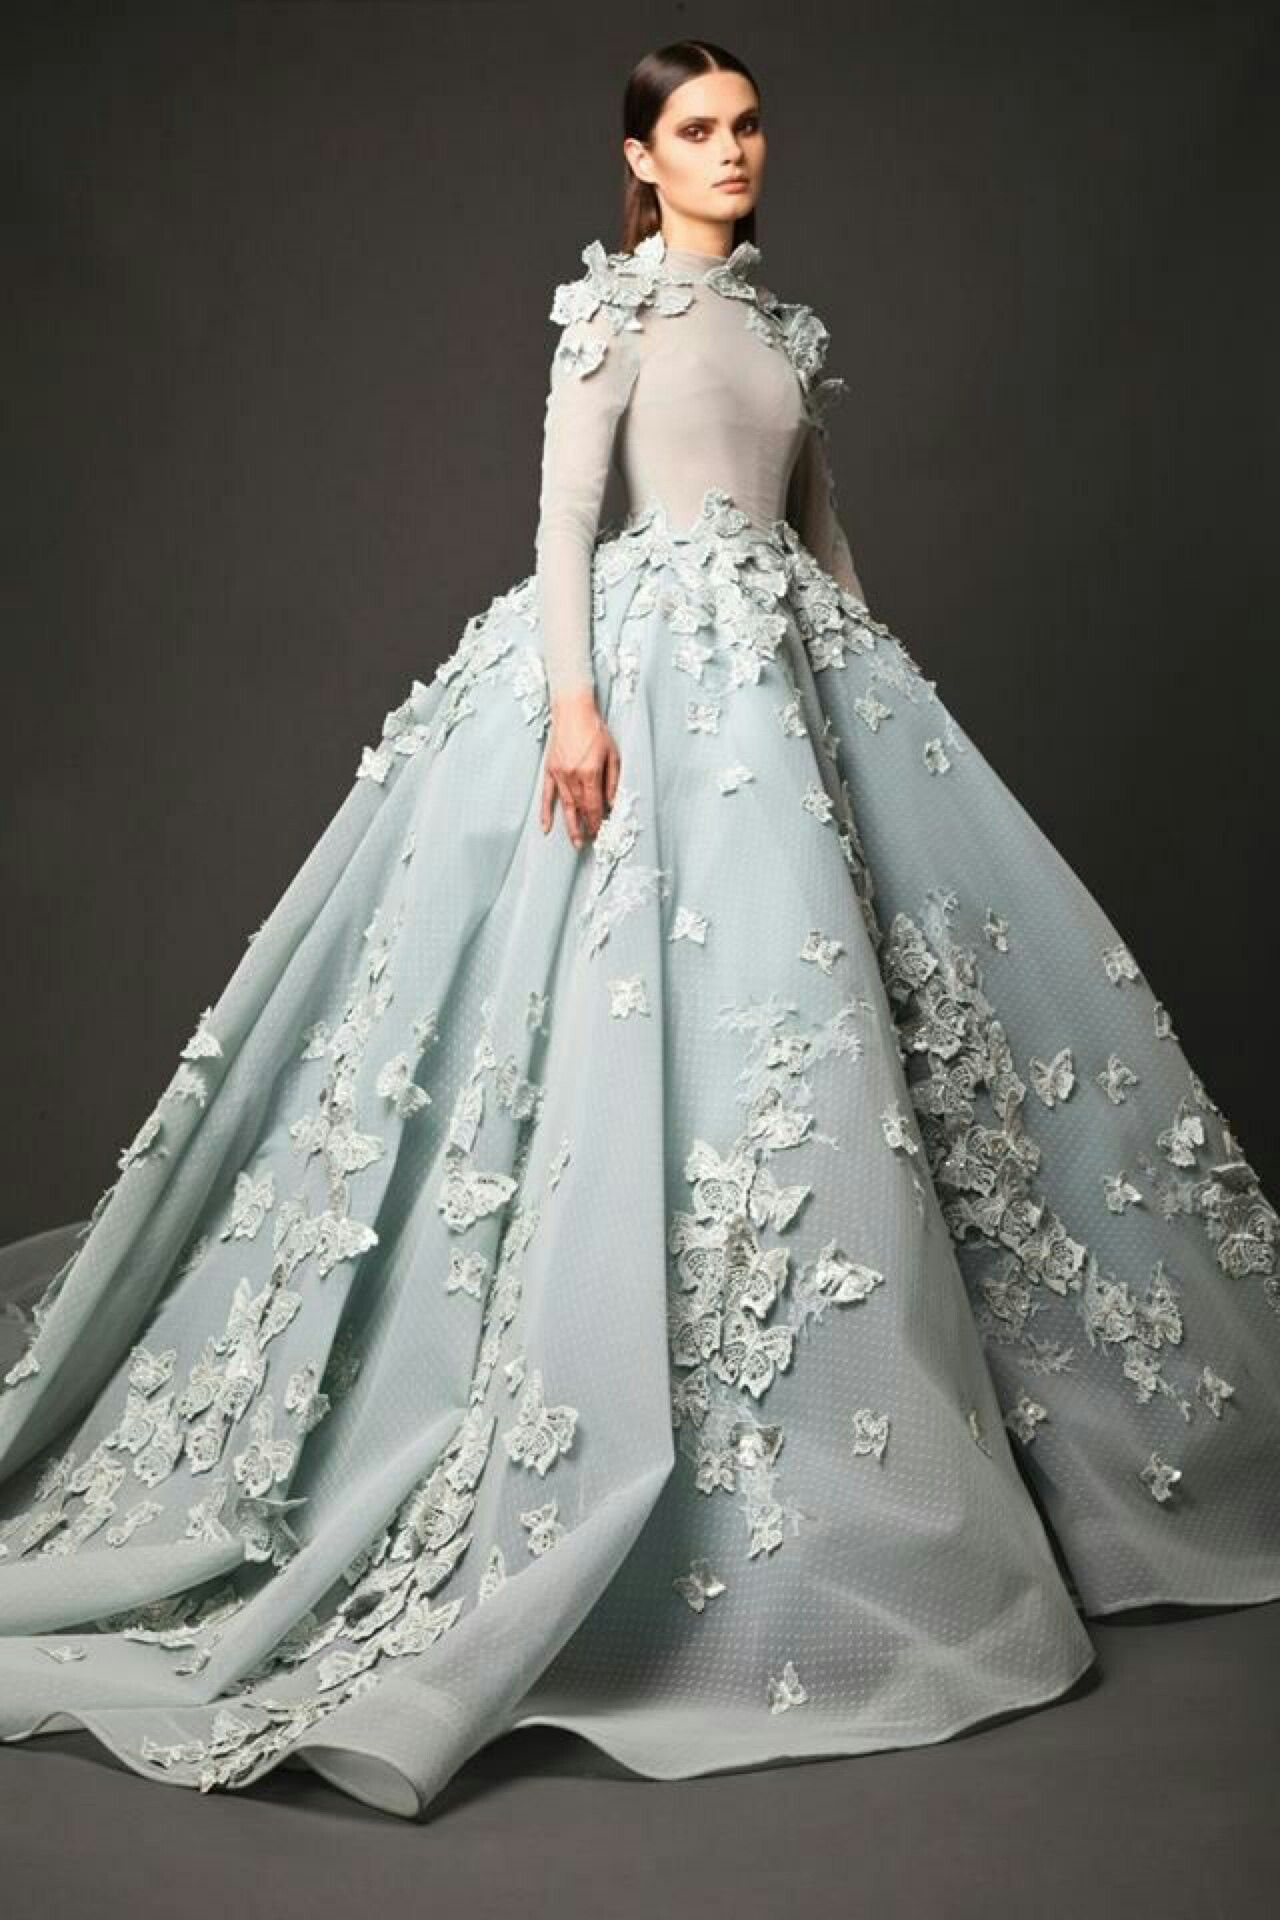 Pin by Tracy Adams on Love | Pinterest | Gowns, Lovely dresses and ...